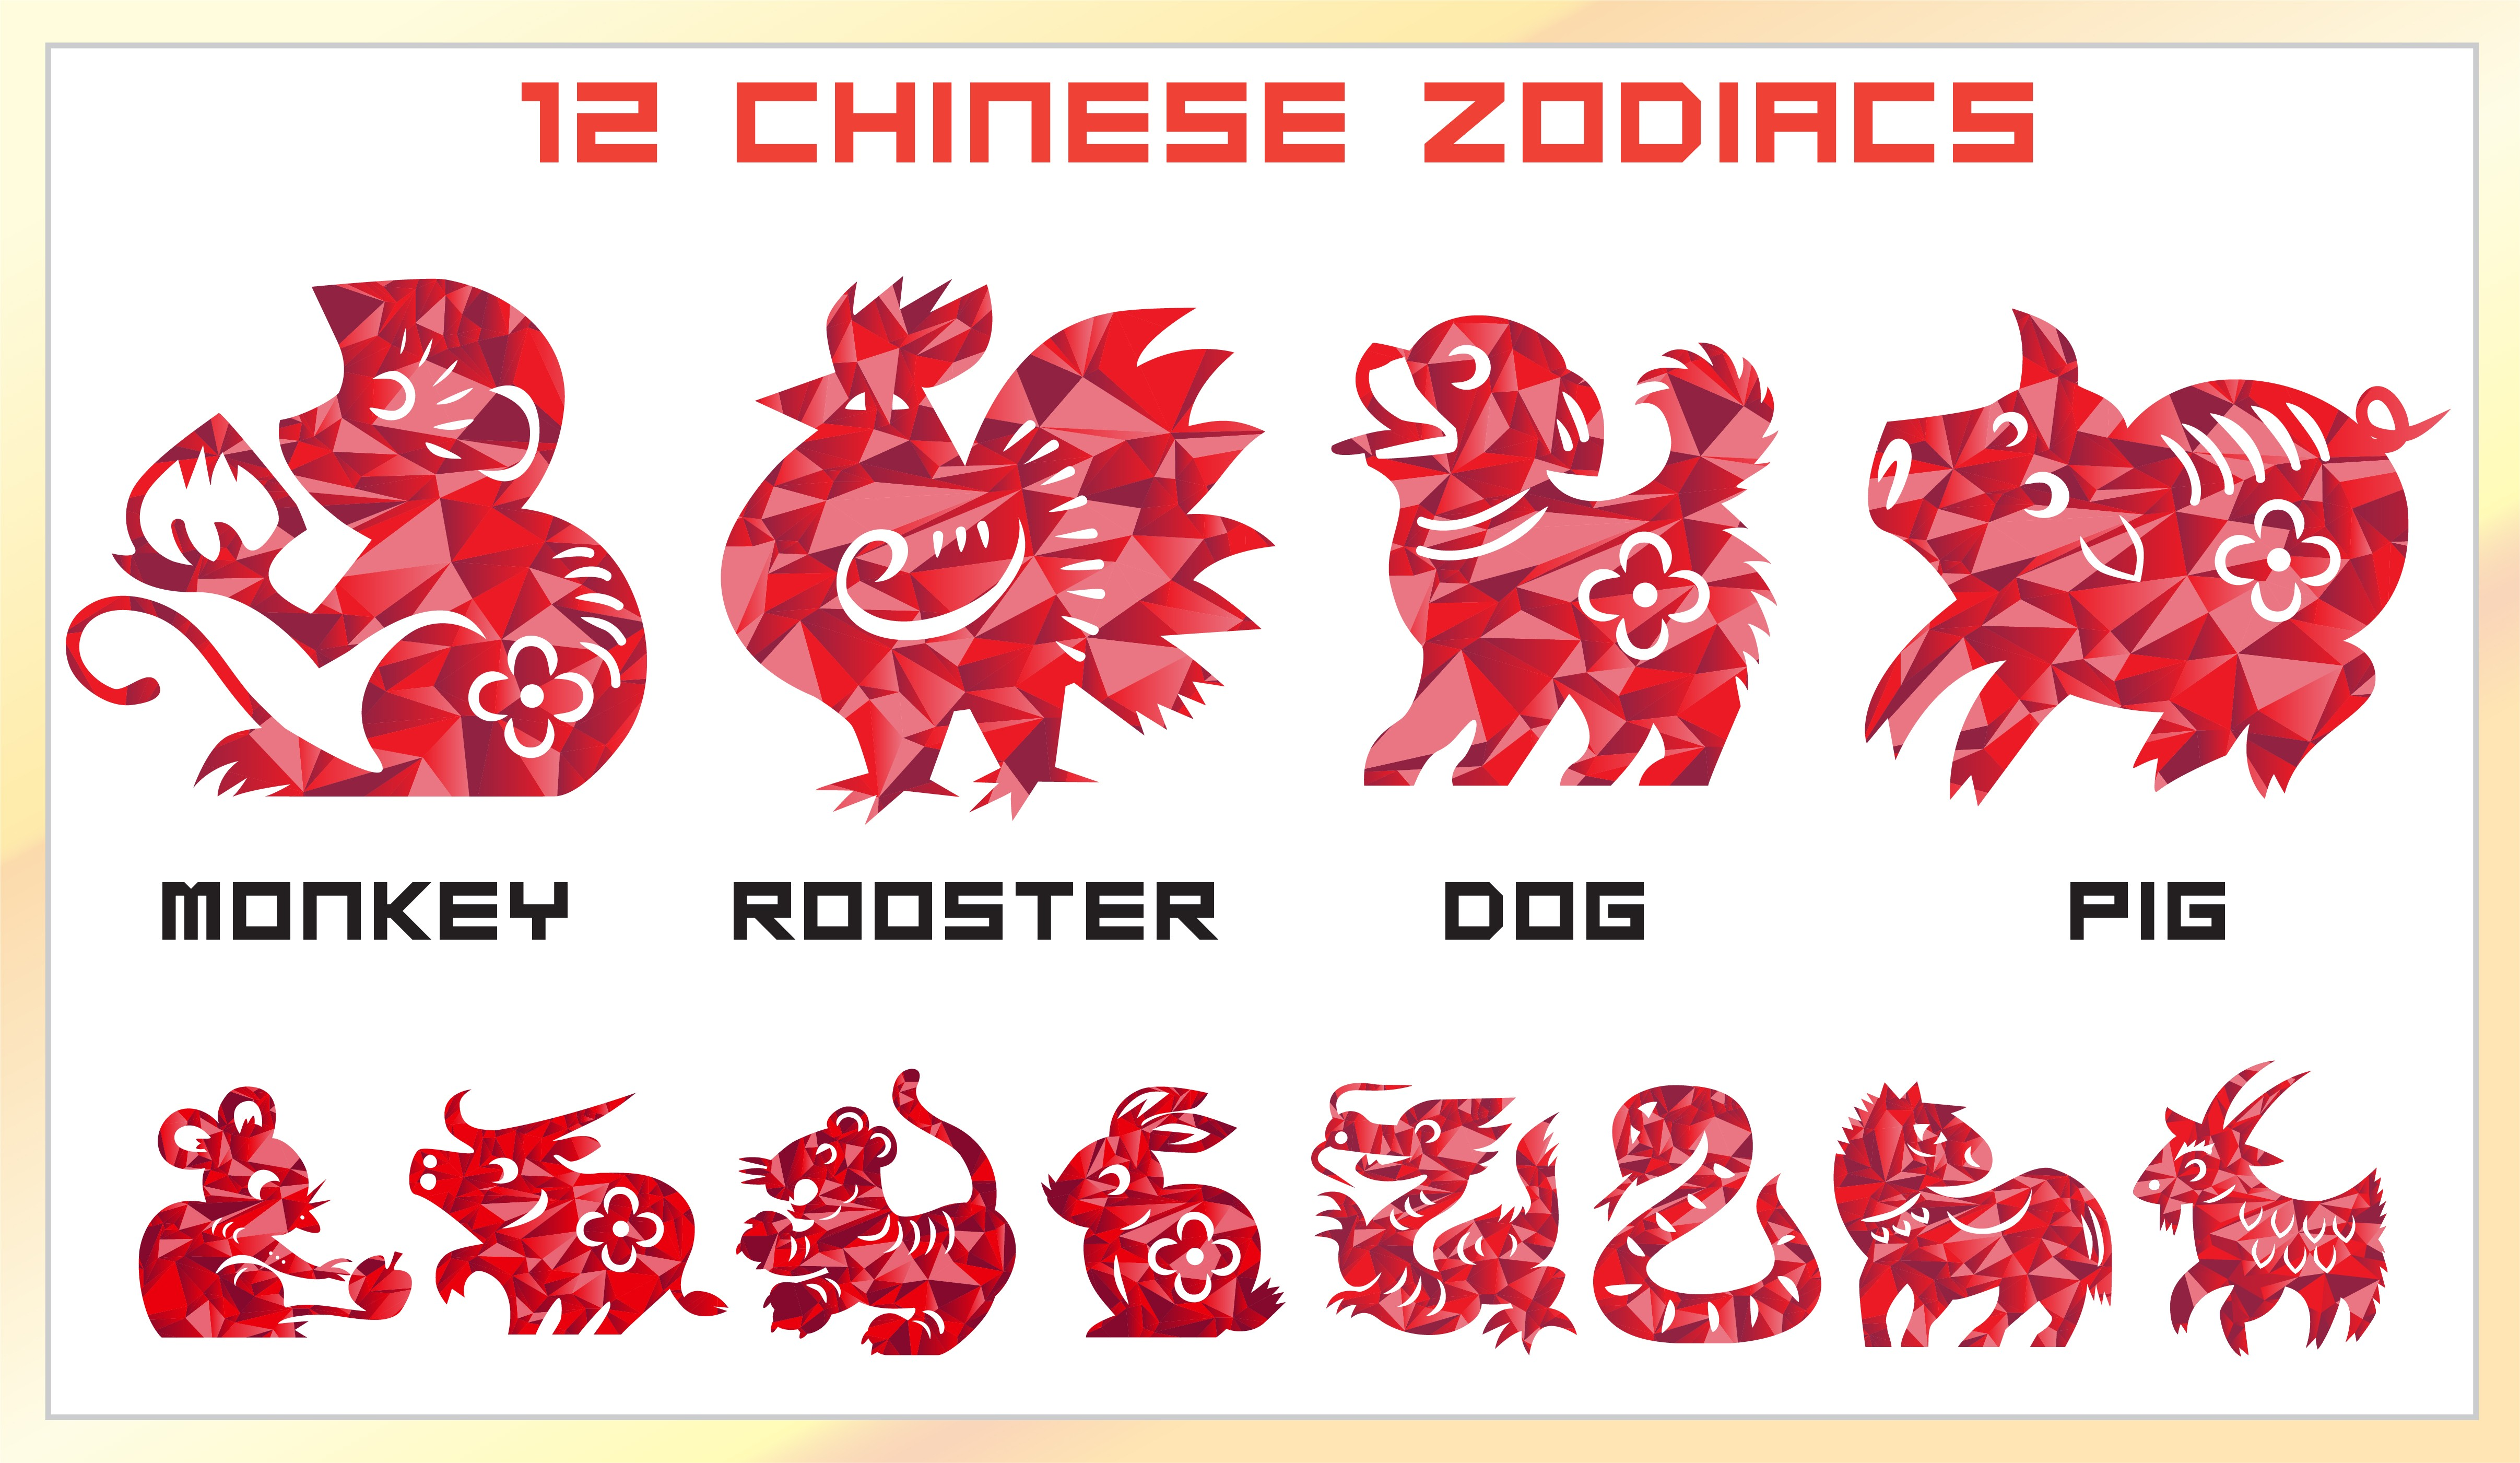 Year Of The Pig Zodiac Predictions For The Monkey Rooster Dog